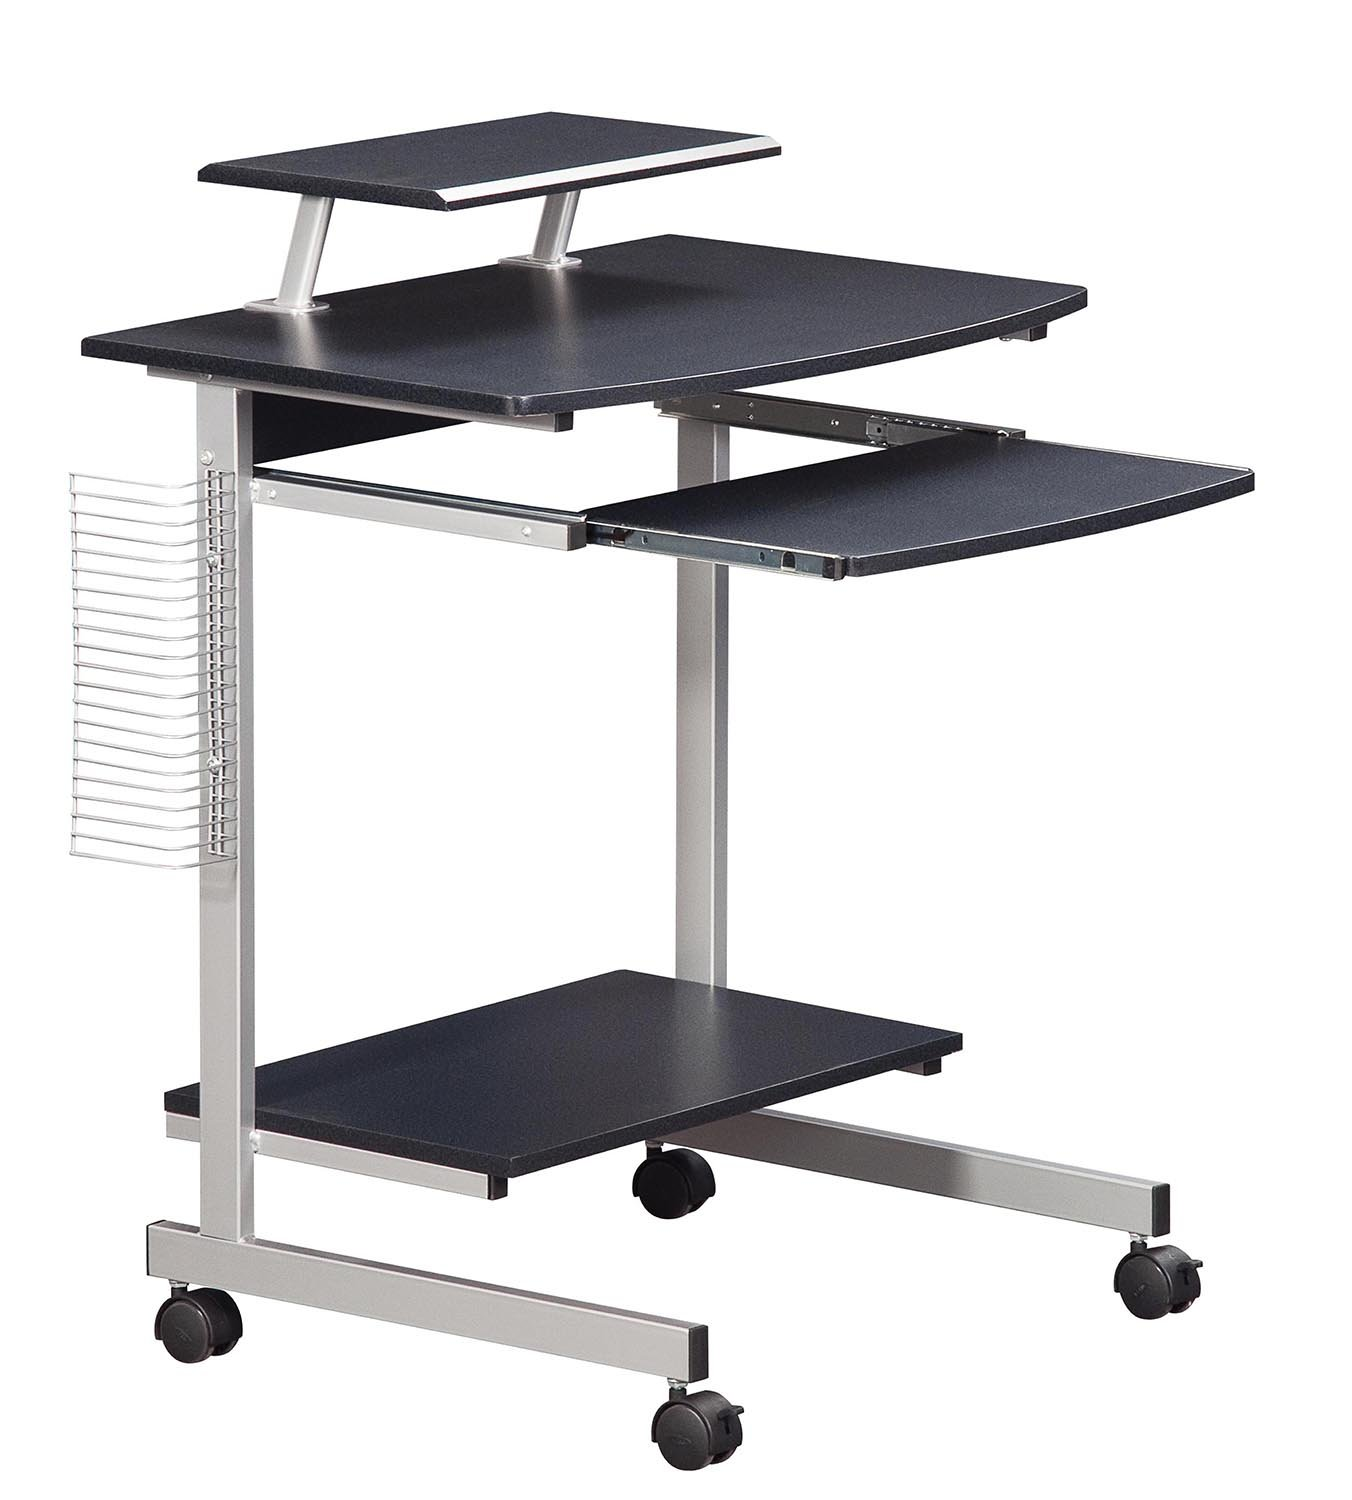 Amazon.com: Mobile \u0026 Compact Complete Computer Workstation Desk ...